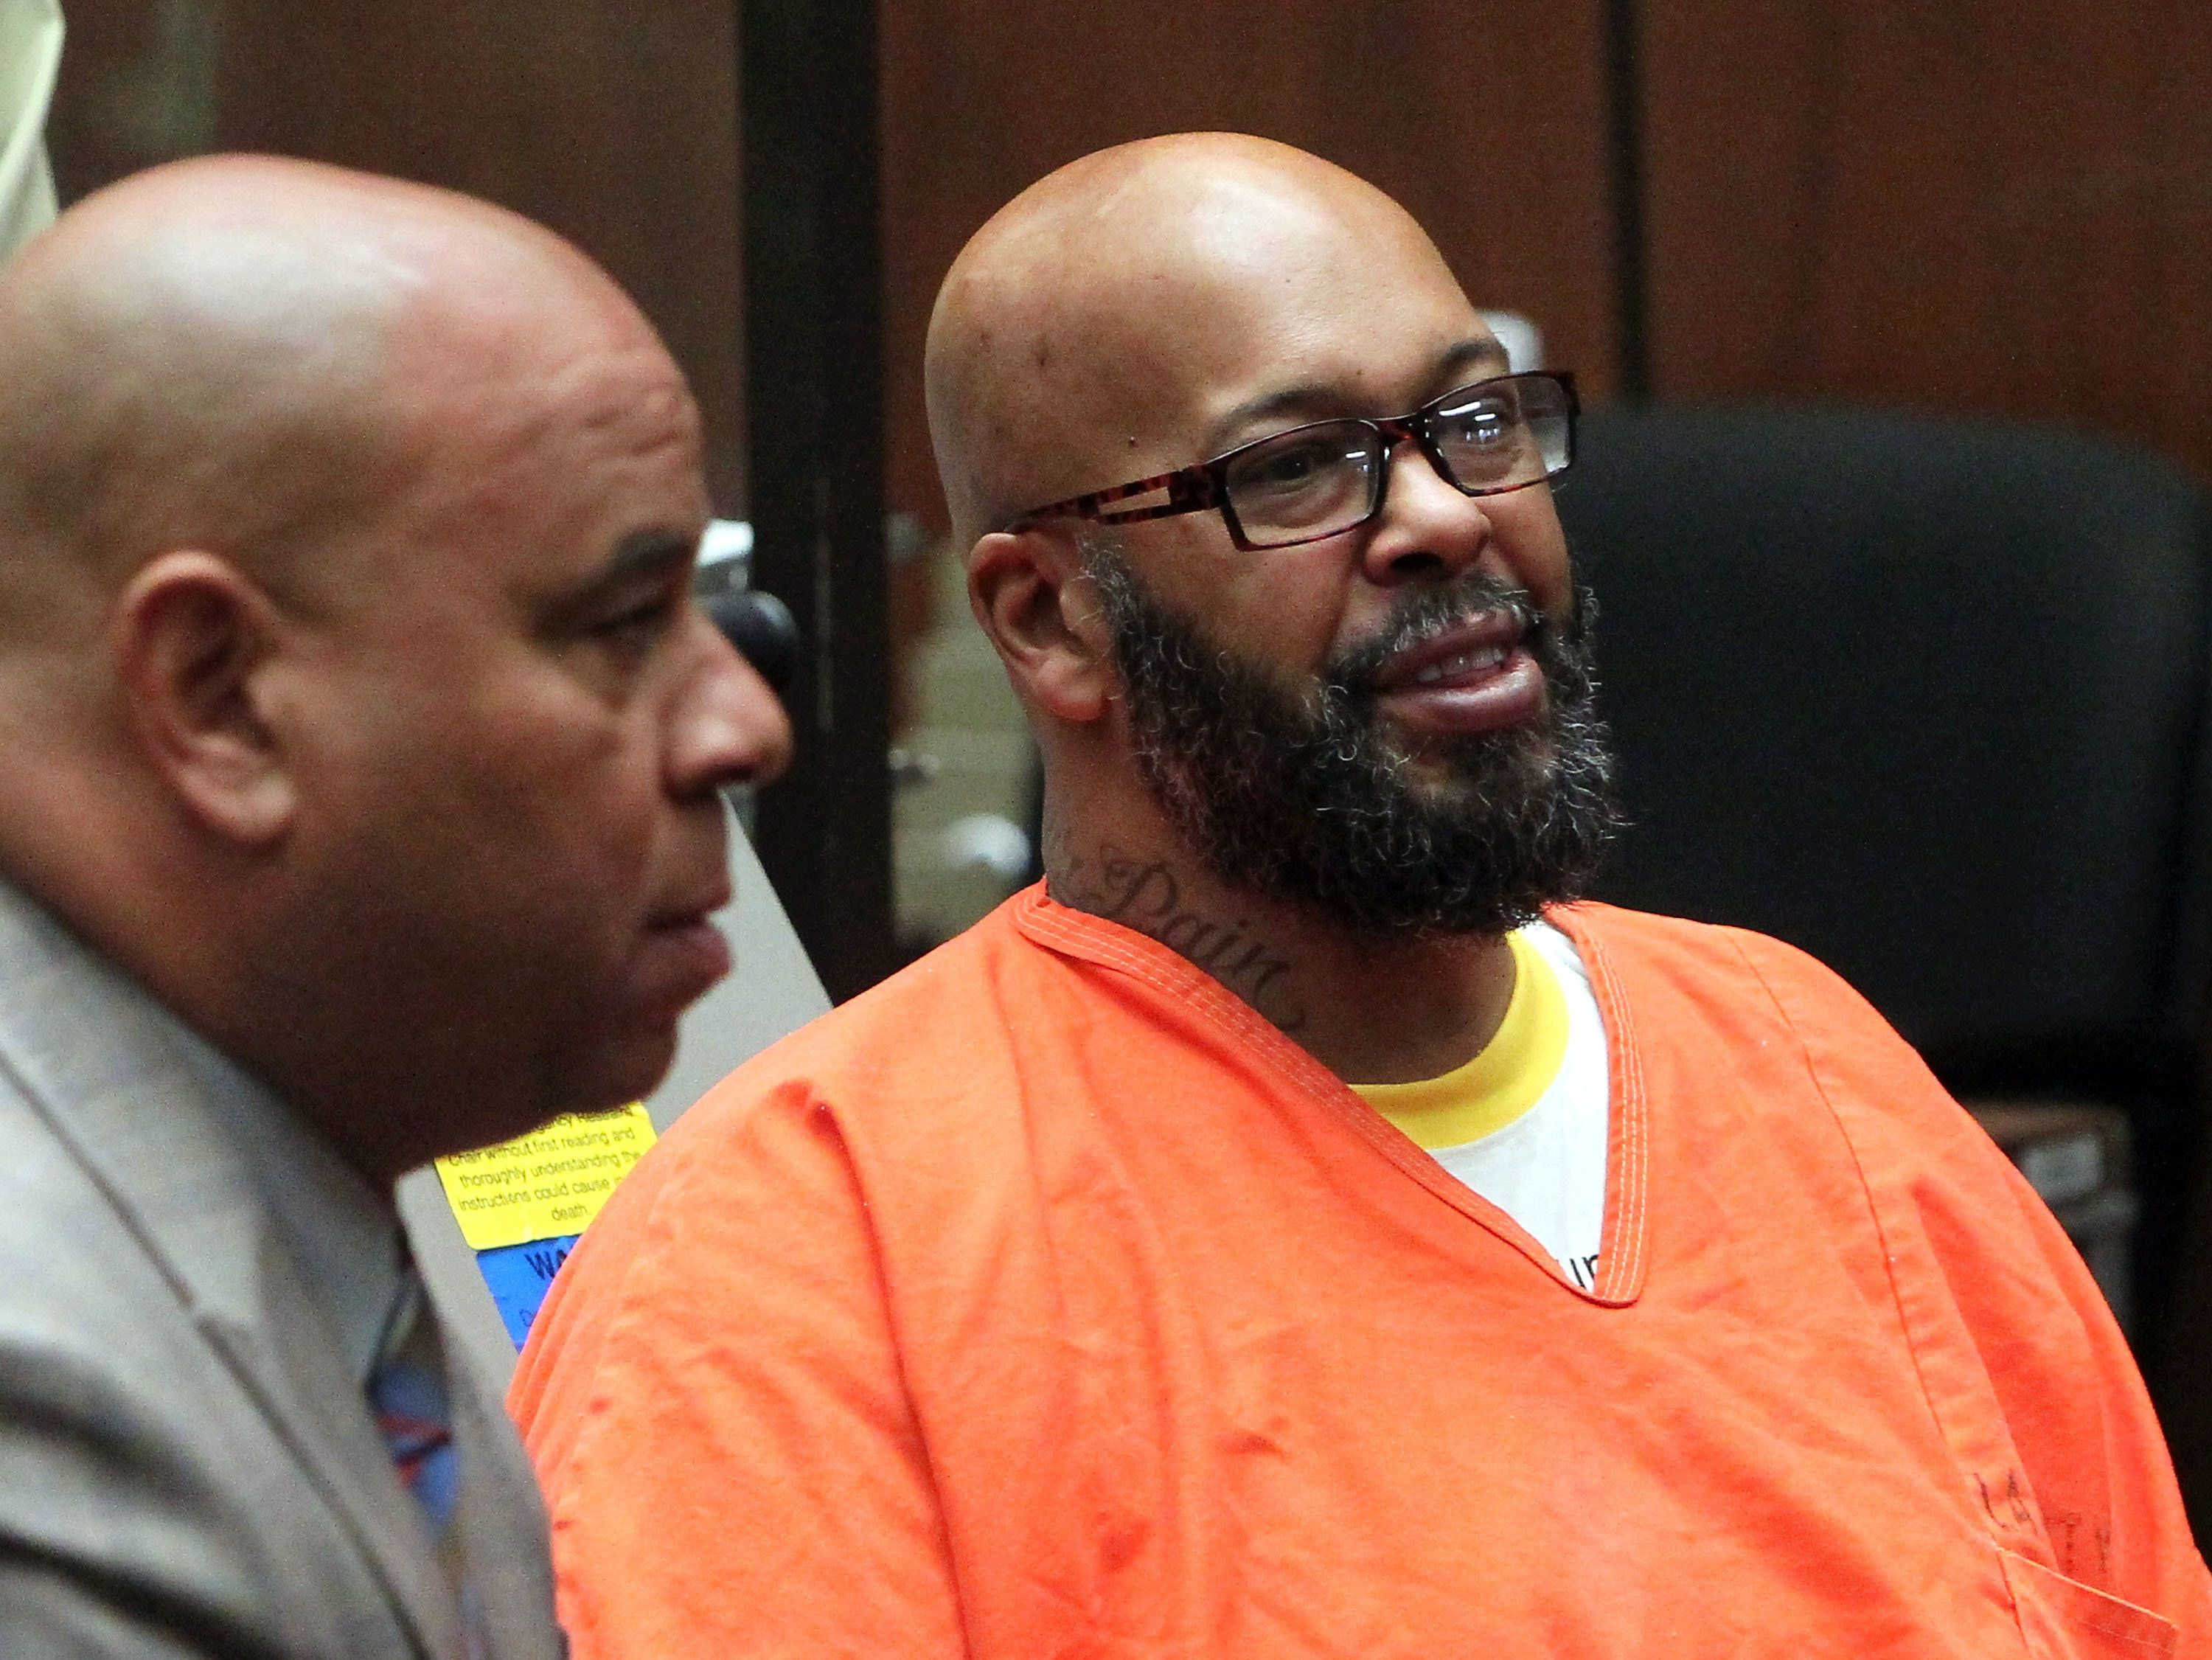 LOS ANGELES, CA - APRIL 08:  Marion 'Suge' Knight (R) appears in court with his Lawyer Matthew P Fletcher for a preliminary hearing in a robbery charge case at Criminal Courts Building on April 8, 2015 in Los Angeles, California.  Knight is charged with robbery and criminal threats after allegedly stealing a photographer's camera during an incident September 5, 2014 in Beverly Hills.  (Photo by David Buchan/Getty Images)